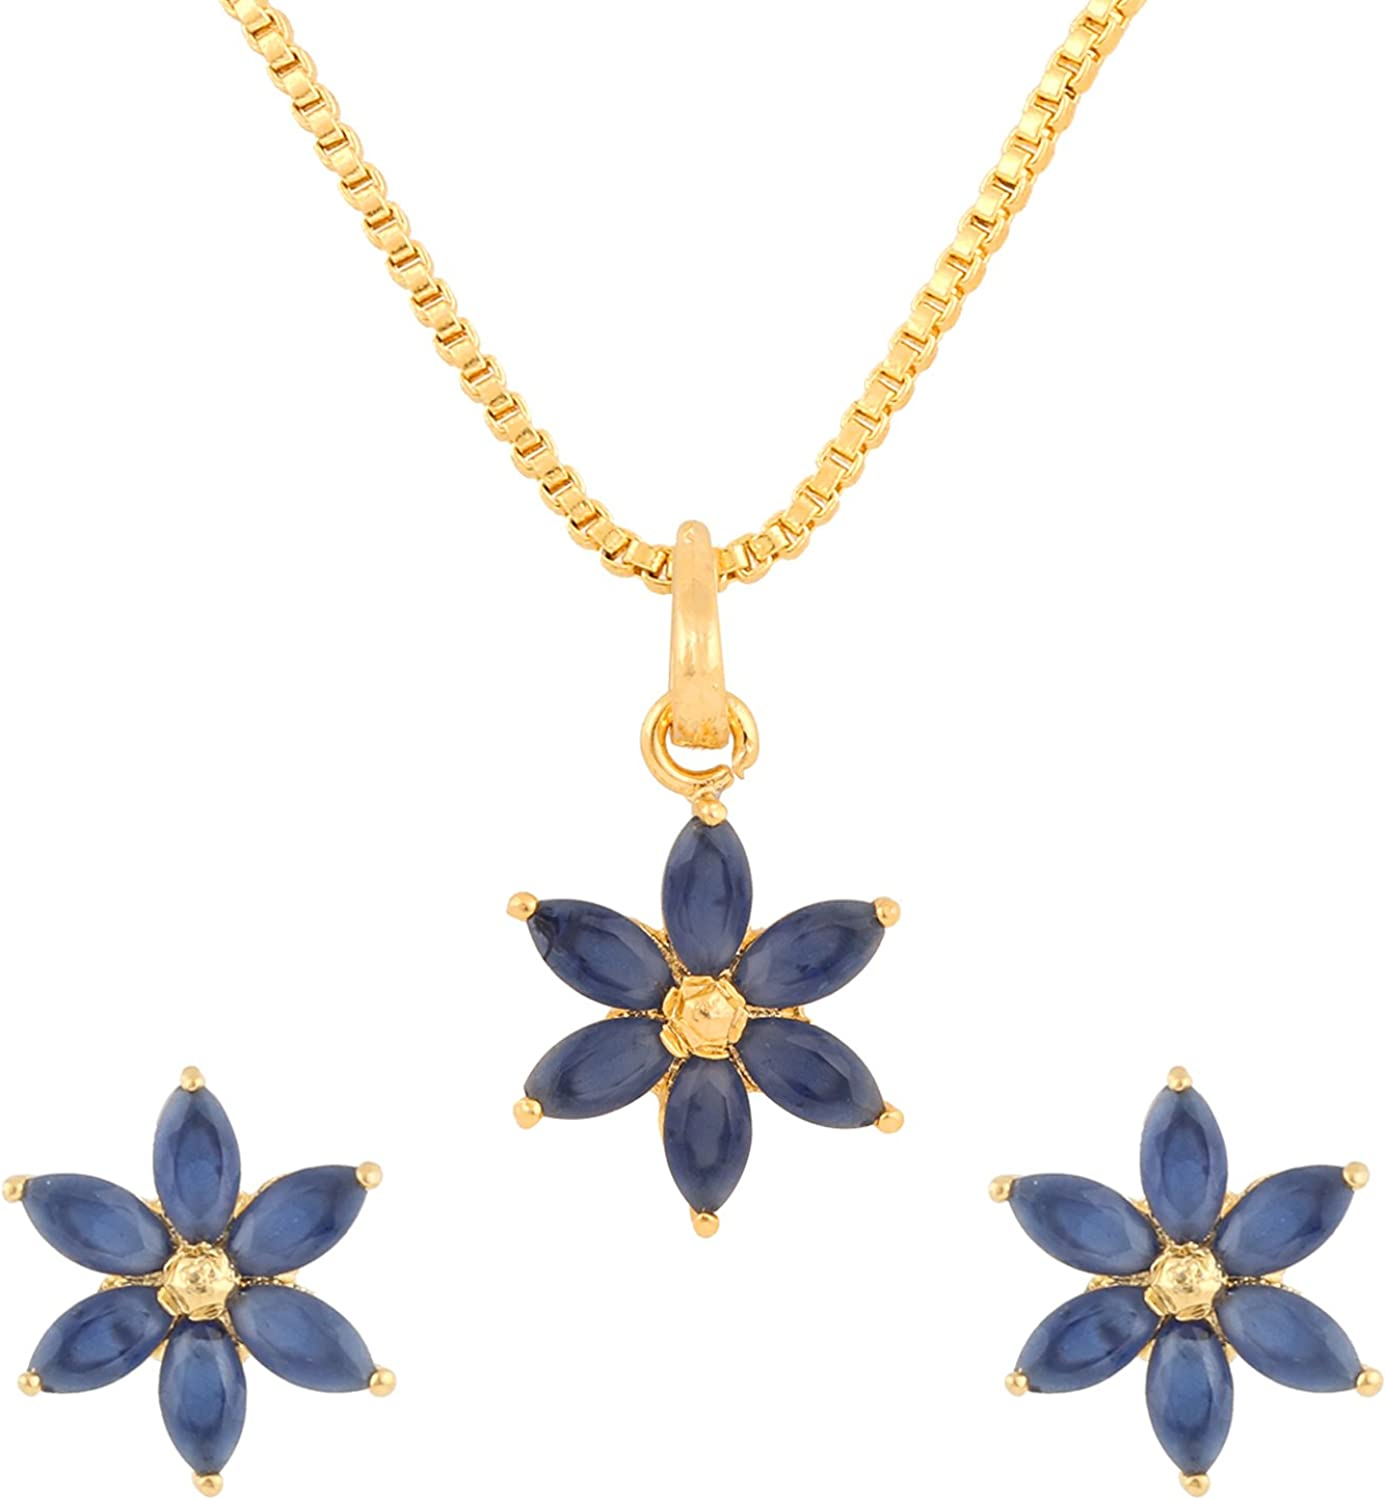 Ethnadore 14K Gold Plated Floral Cubic Zirconia Pendant Necklace and Earrings Jewelry Set for Women Girls